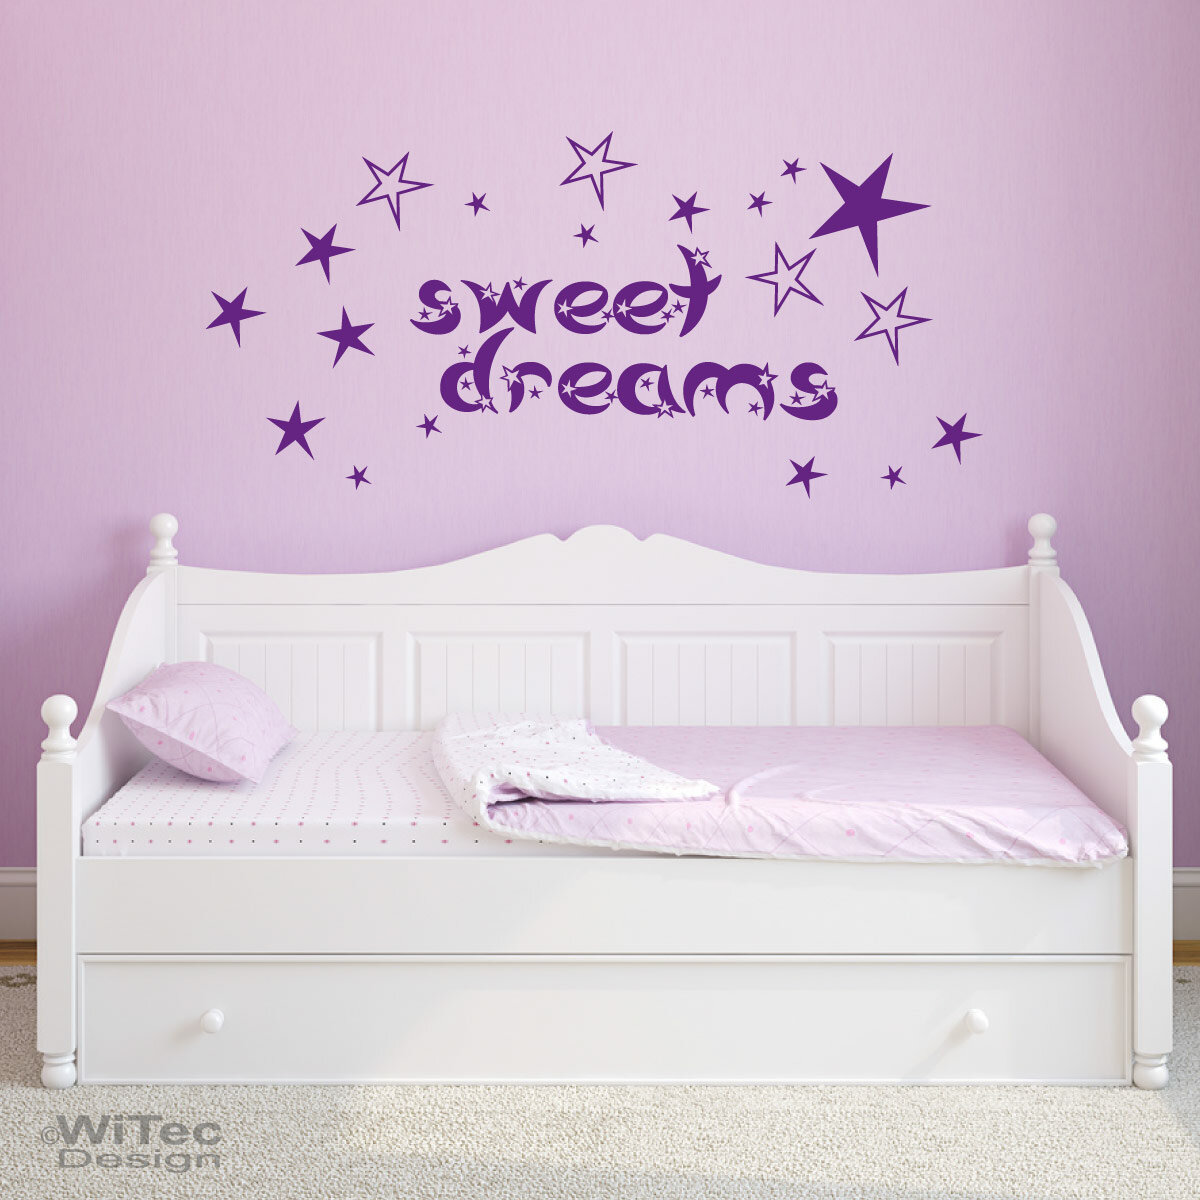 wandtattoo kinderzimmer sweet dreams sterne wandaufkleber. Black Bedroom Furniture Sets. Home Design Ideas